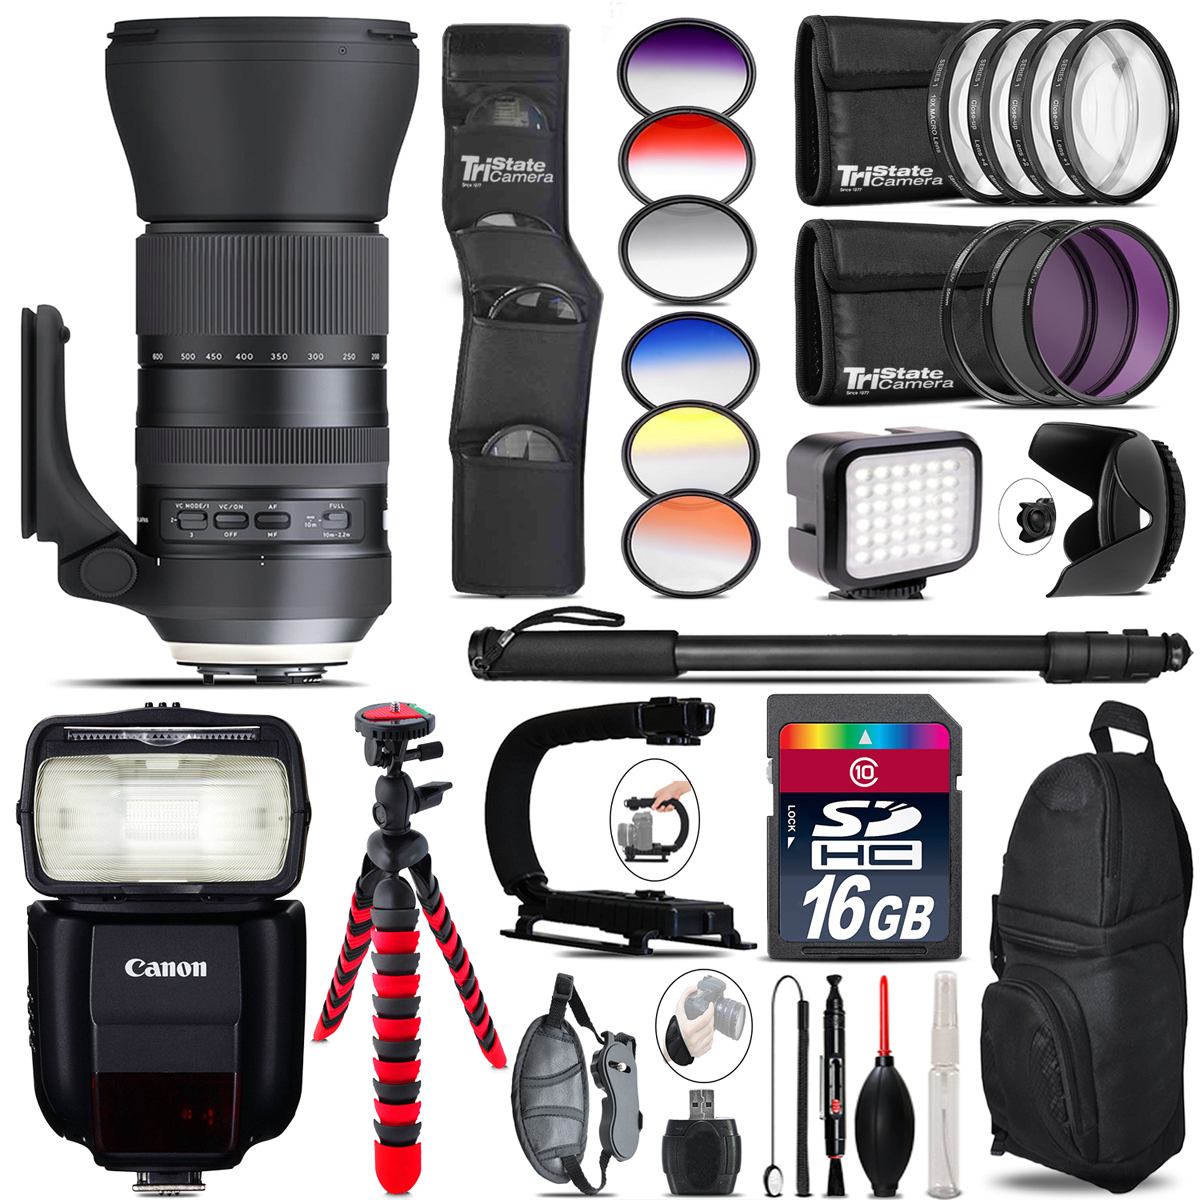 Tamron 150-600mm G2 for Canon + Speedlite 430EX III + LED - 16GB Accessory Kit *FREE SHIPPING*